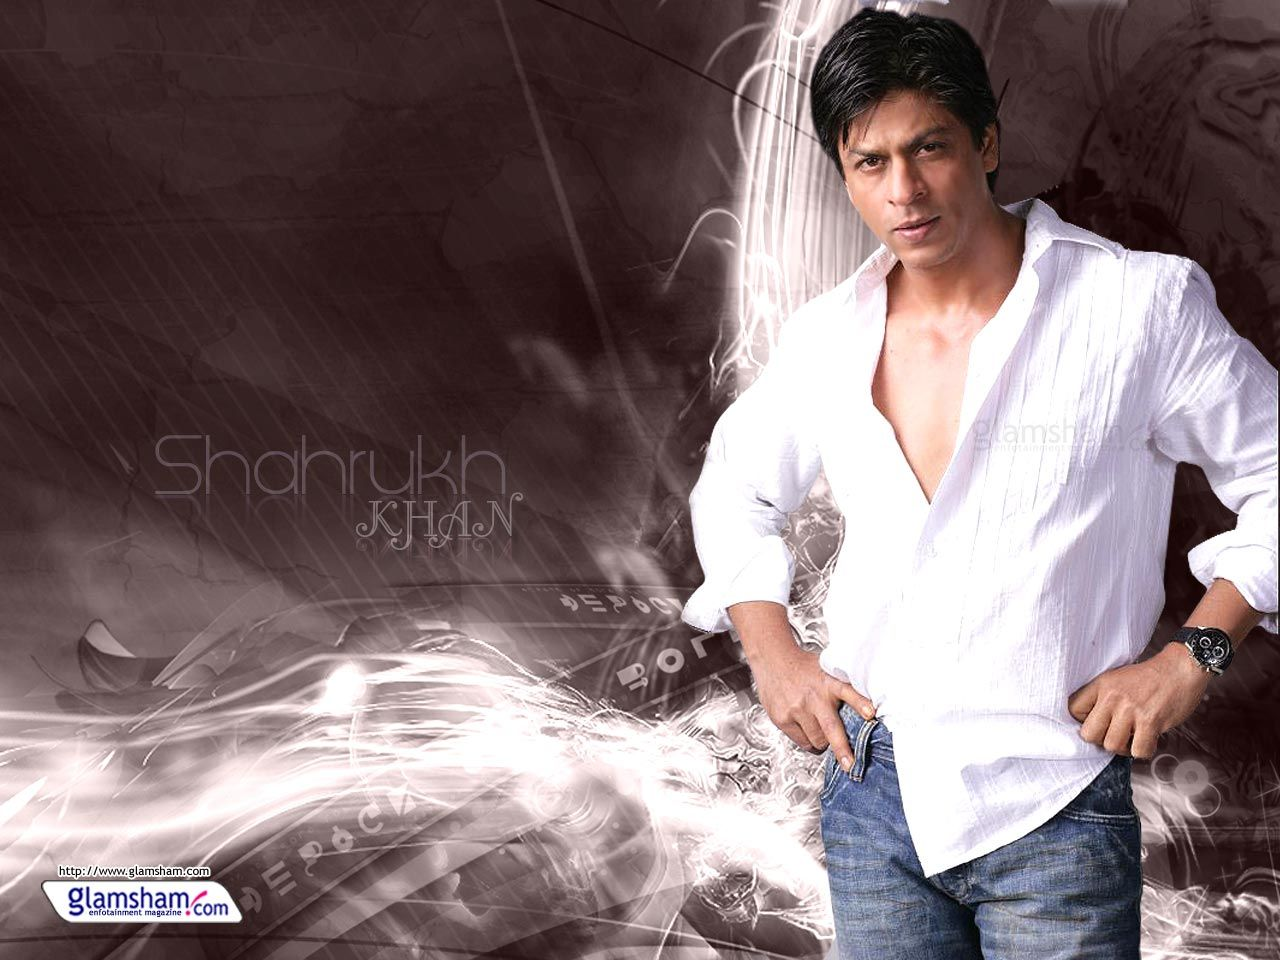 shah rukh khan wallpaper | hd wallpapers | pinterest | shahrukh khan